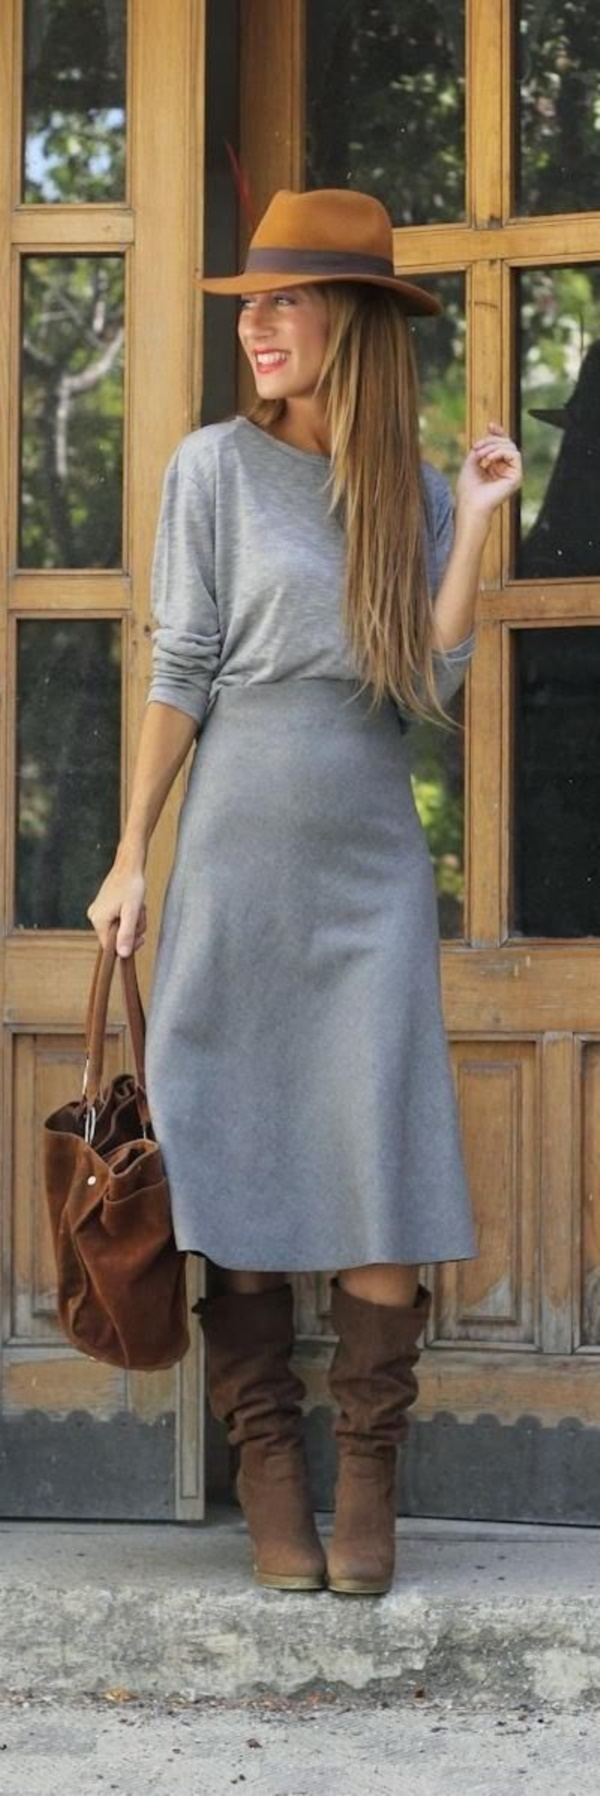 grey skirt outfit (70)